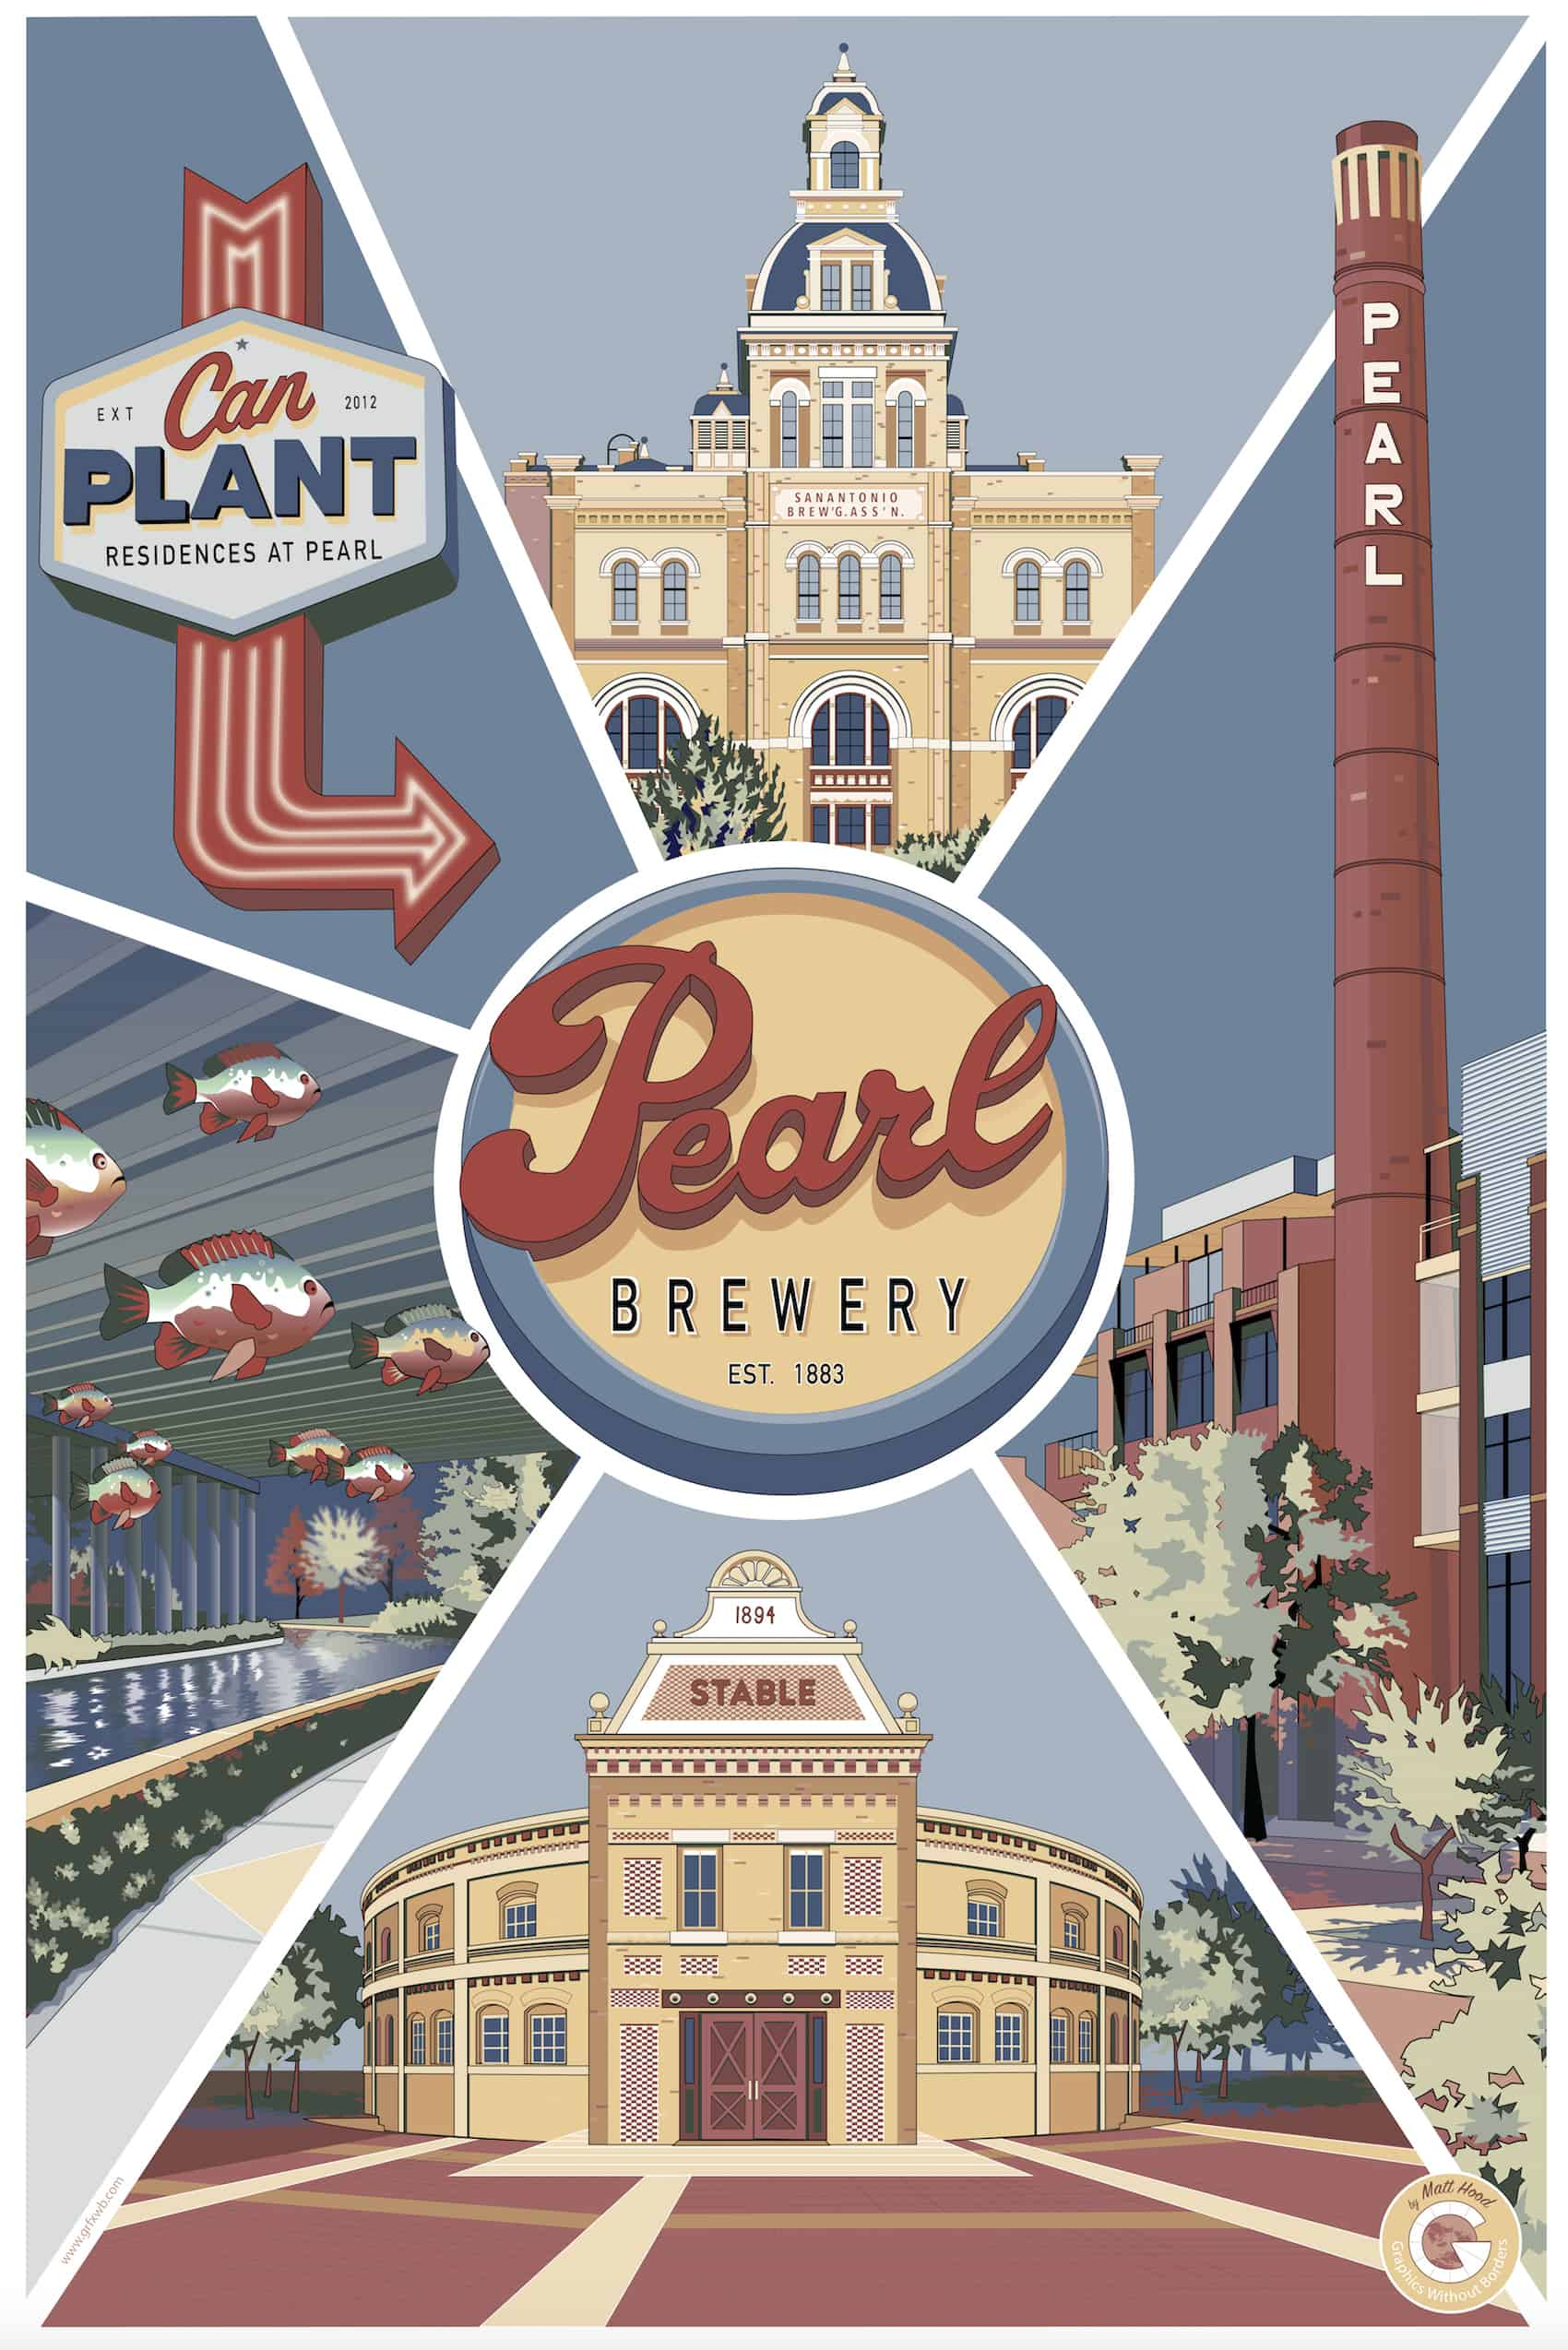 The Pearl Brewery in San Antonio